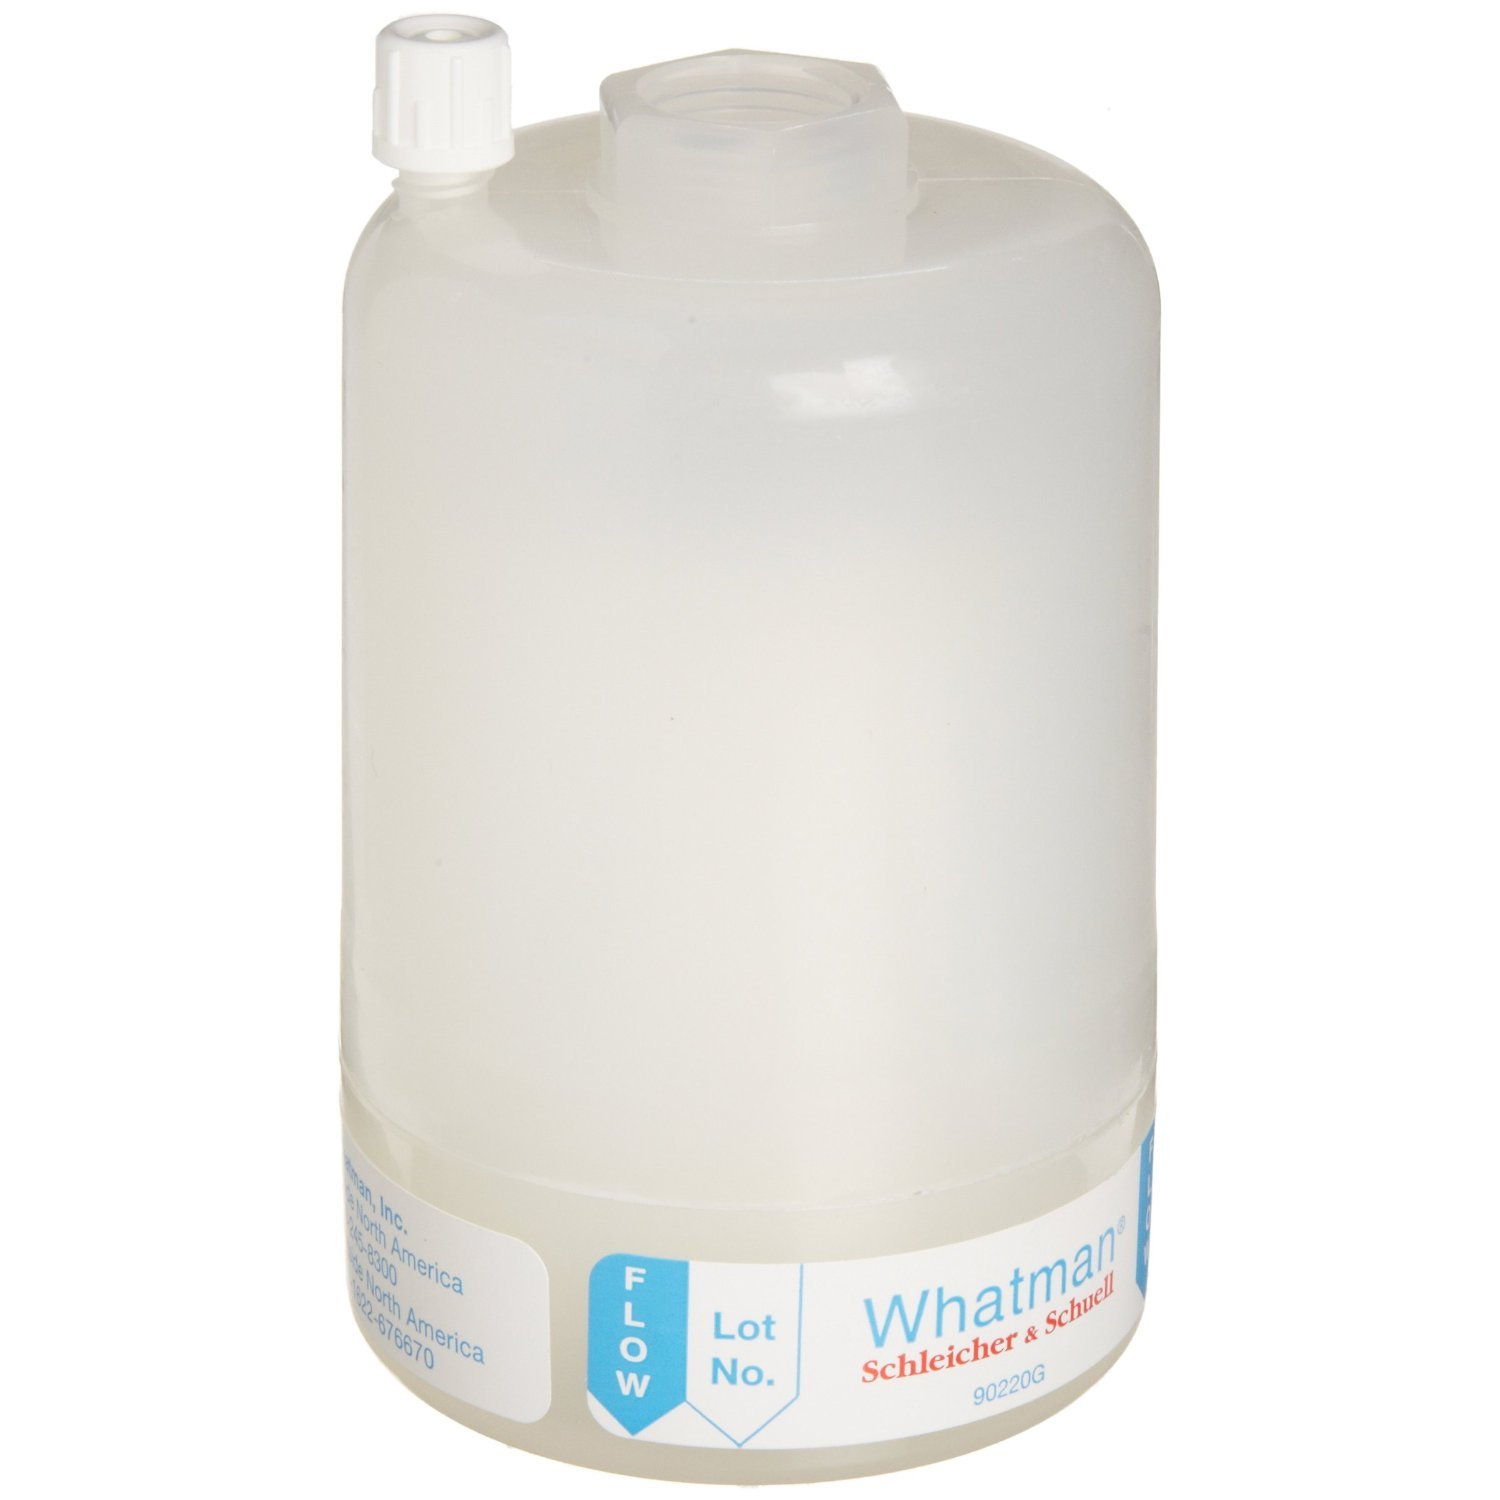 Whatman Polycap TF 150 PTFE Membrane Capsule Filter with FNPT Inlet and Outlet, 60 psi Maximum Pressure (Pack of 5)